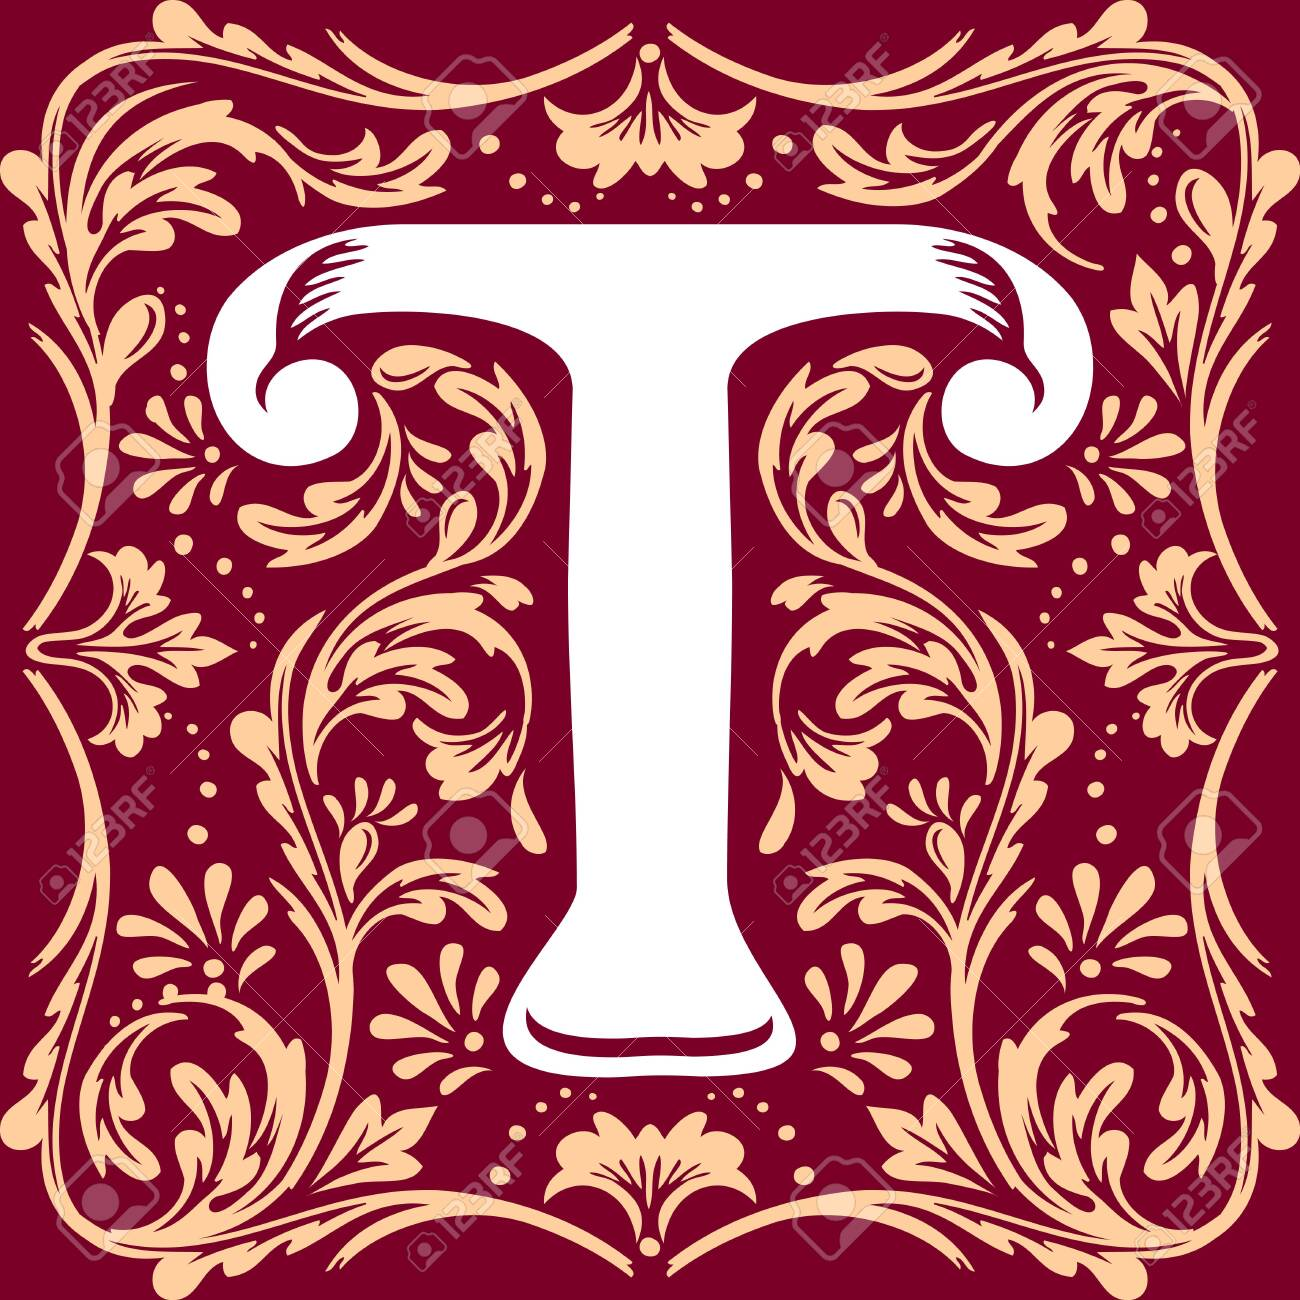 letter T vector image in the old vintage style - 135407882